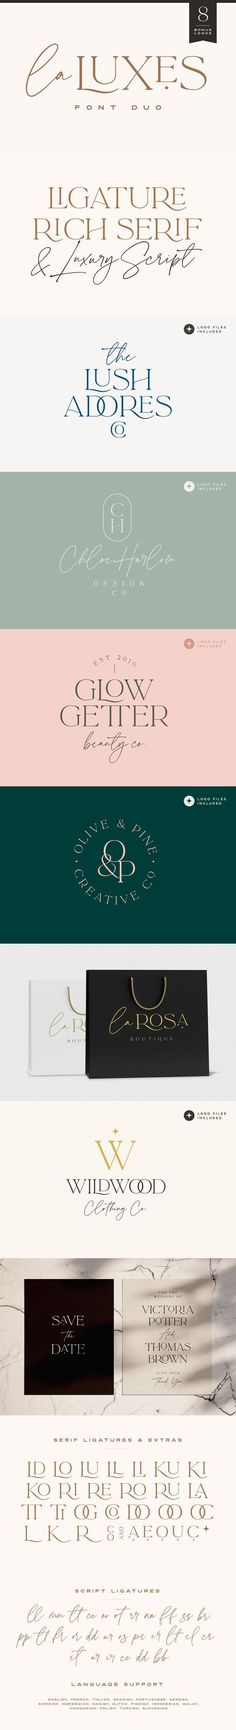 Indulge yourself in a luxurious typography pairing with La Luxes; a classic font duo consisting of an elegant Script & ligature-rich Serif. Also included in this product are 8 bonus logo templates… Hand Lettering Fonts, Typography Fonts, Typography Design, Branding Design, Typeface Font, Cursive Fonts, Vintage Fonts, Vintage Typography, Classic Fonts